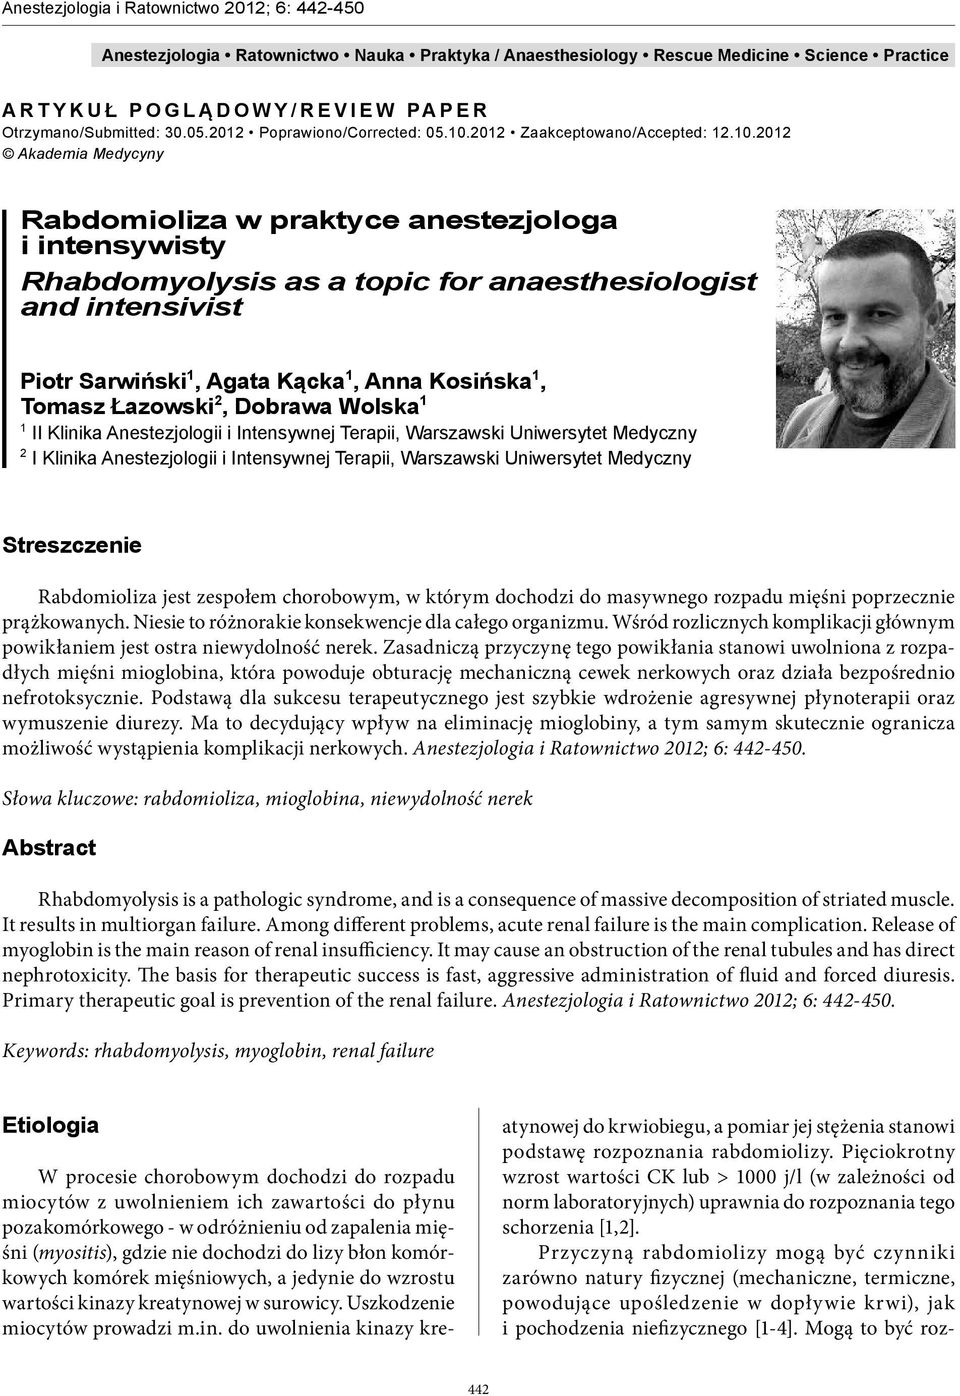 2012 Akademia Medycyny Rabdomioliza w praktyce anestezjologa i intensywisty Rhabdomyolysis as a topic for anaesthesiologist and intensivist Piotr Sarwiński 1, Agata Kącka 1, Anna Kosińska 1, Tomasz